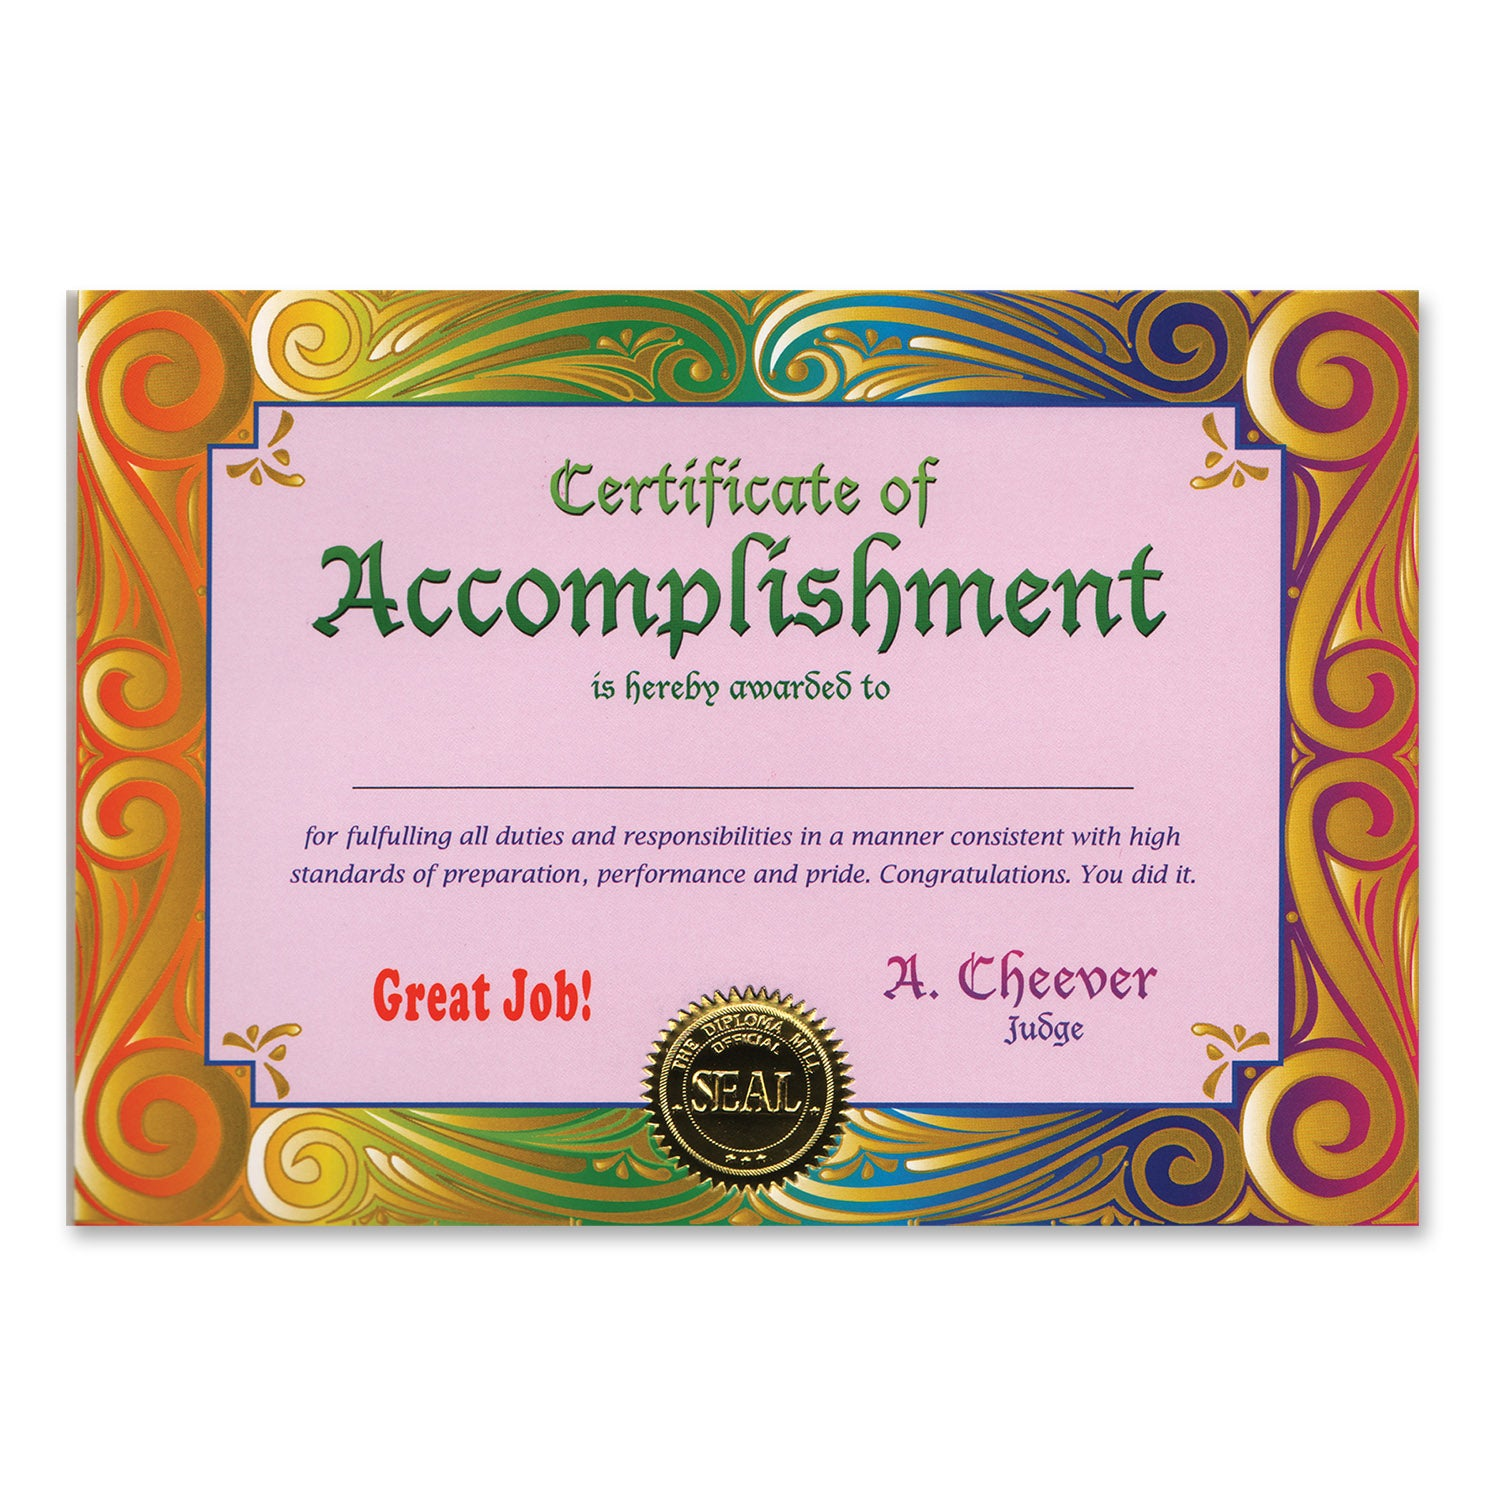 Certificate Of Accomplishment by Beistle - School Awards and Supplies Decorations